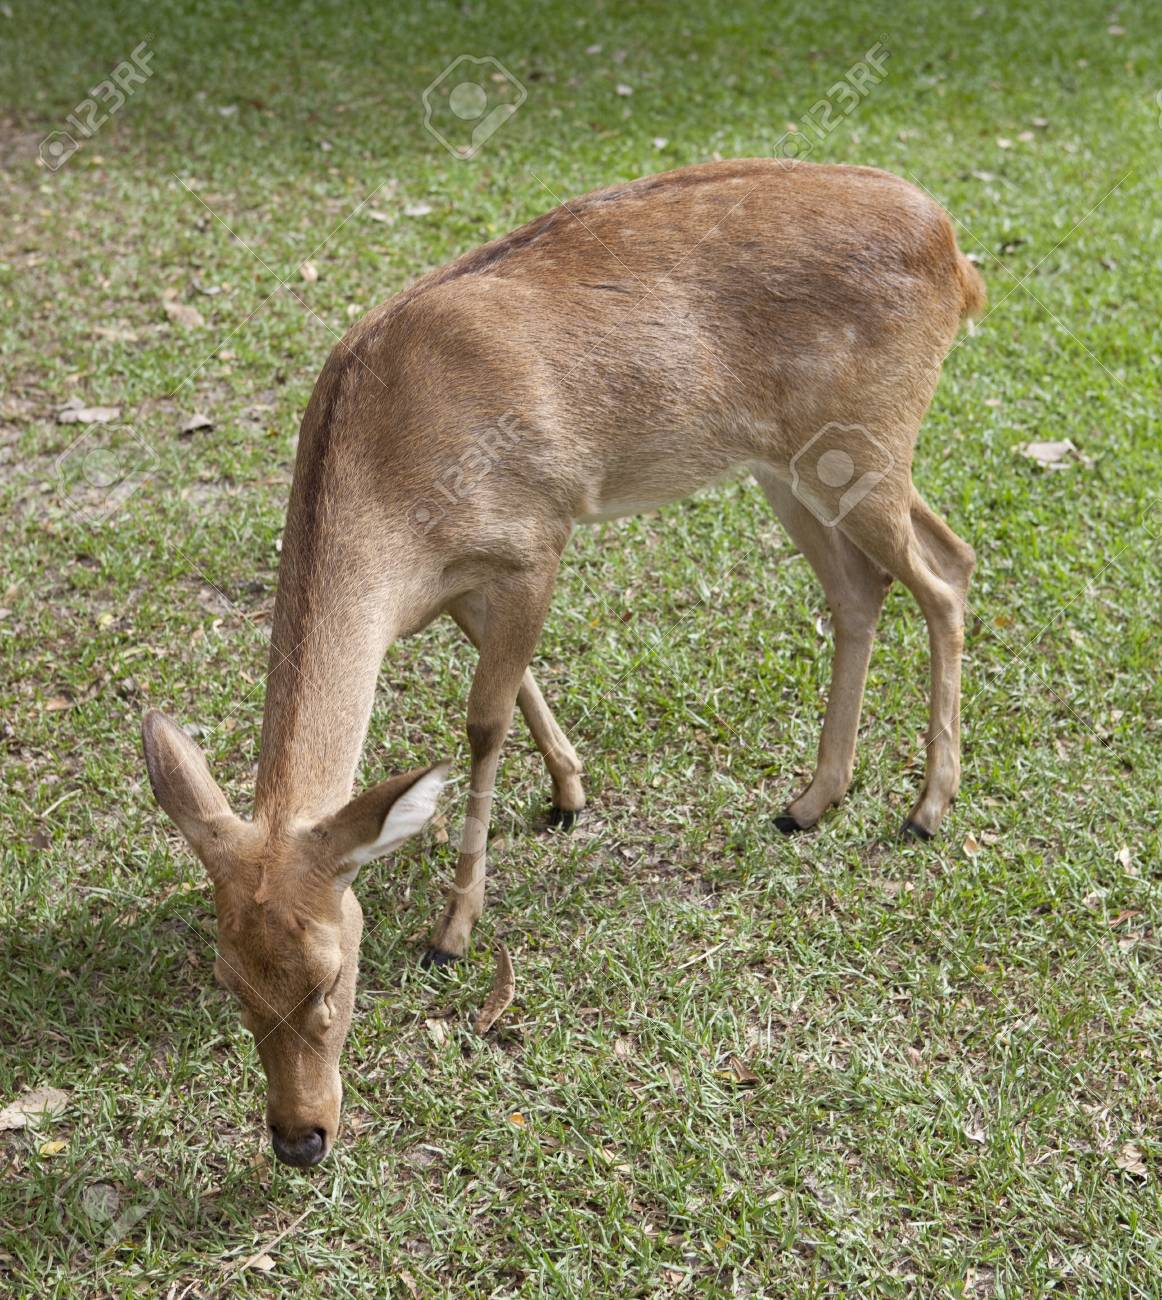 Eld's deer from Thailand (Cervus eldii siamensis) Stock Photo - 16685584